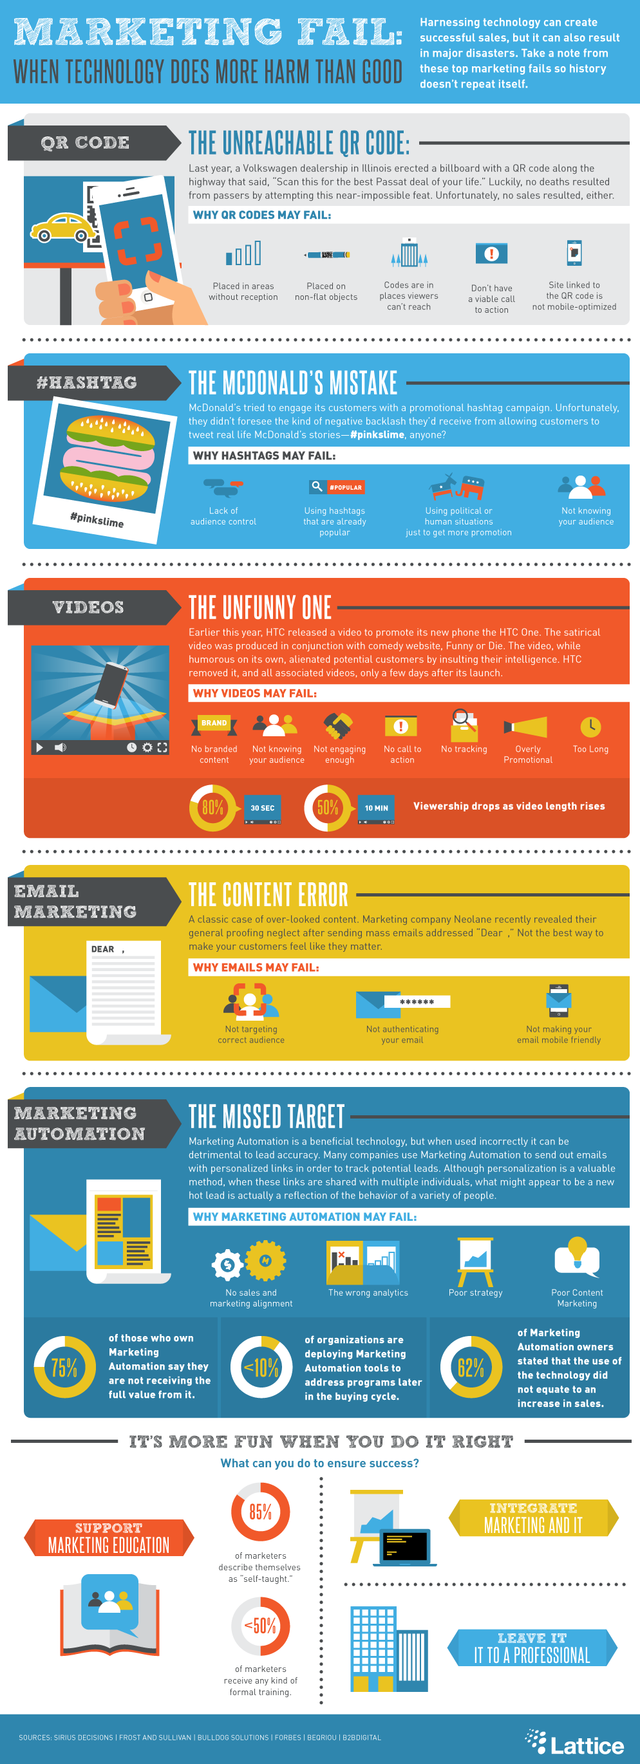 5 Marketing fails infographic